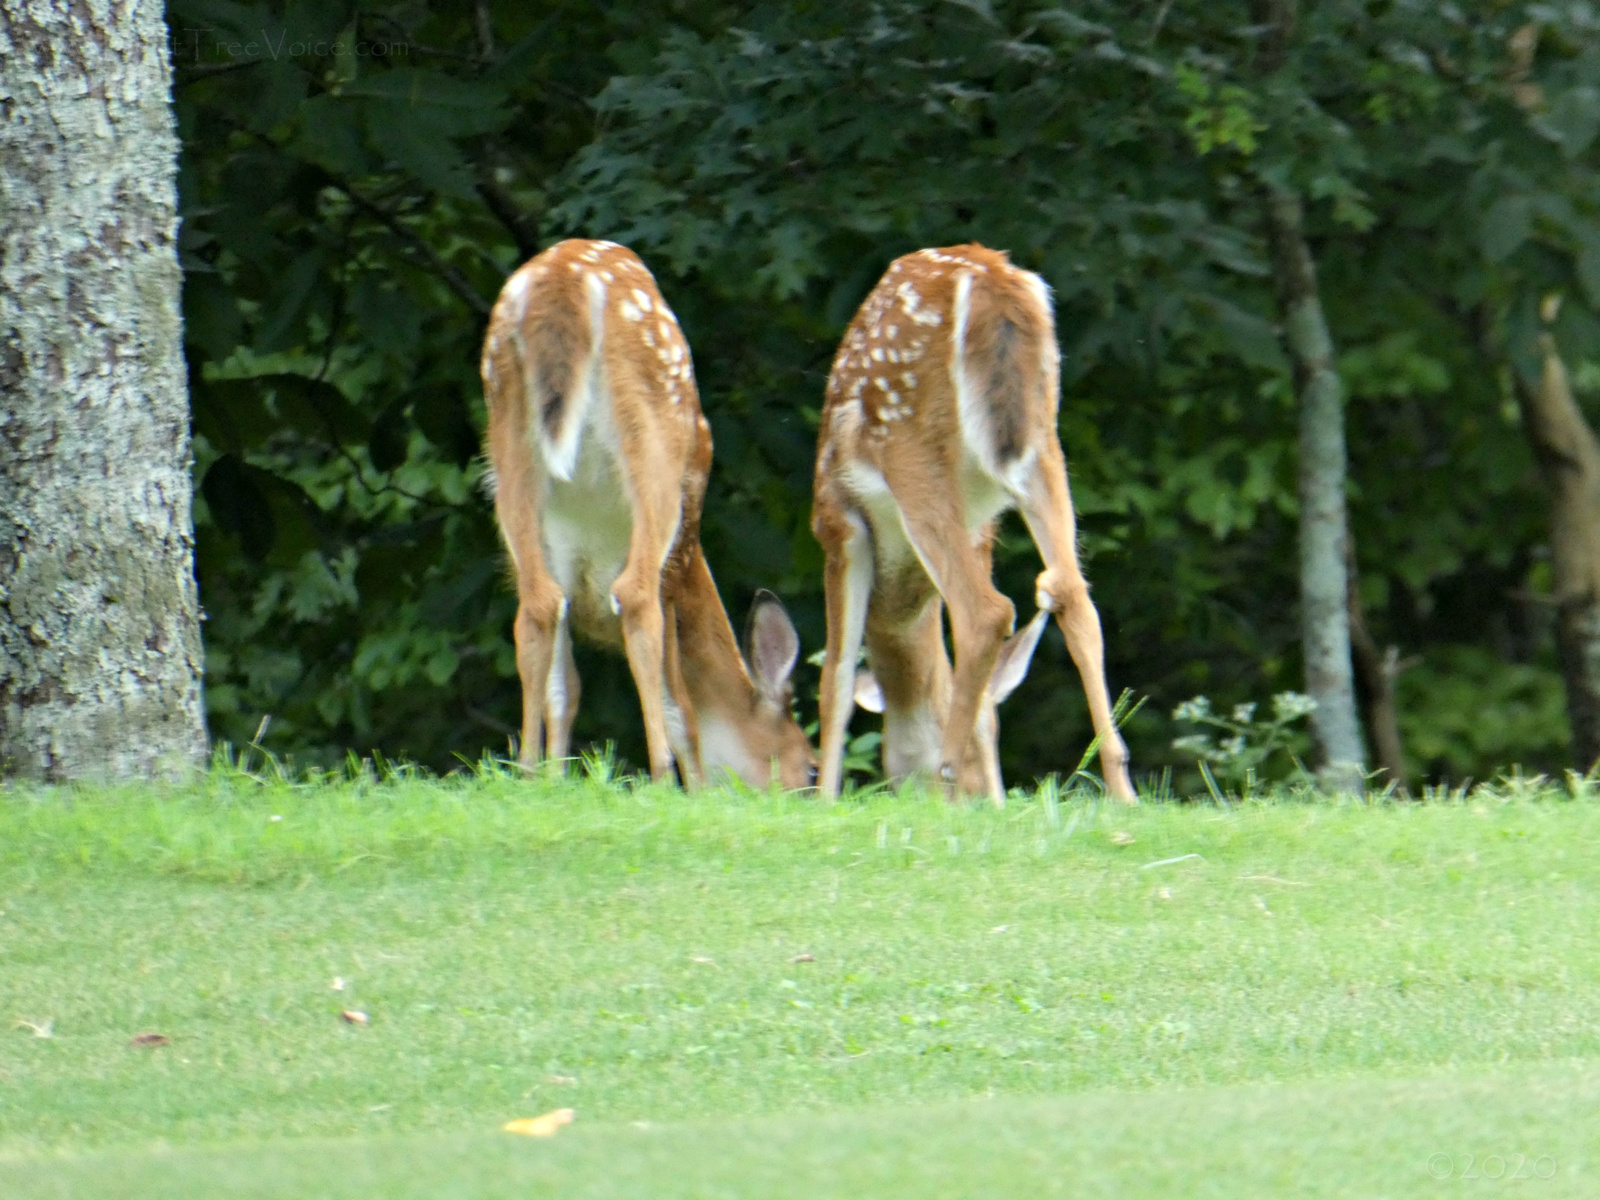 August 23, 2020 - Twin fawns on Hole 6, Bent Tree Golf Course